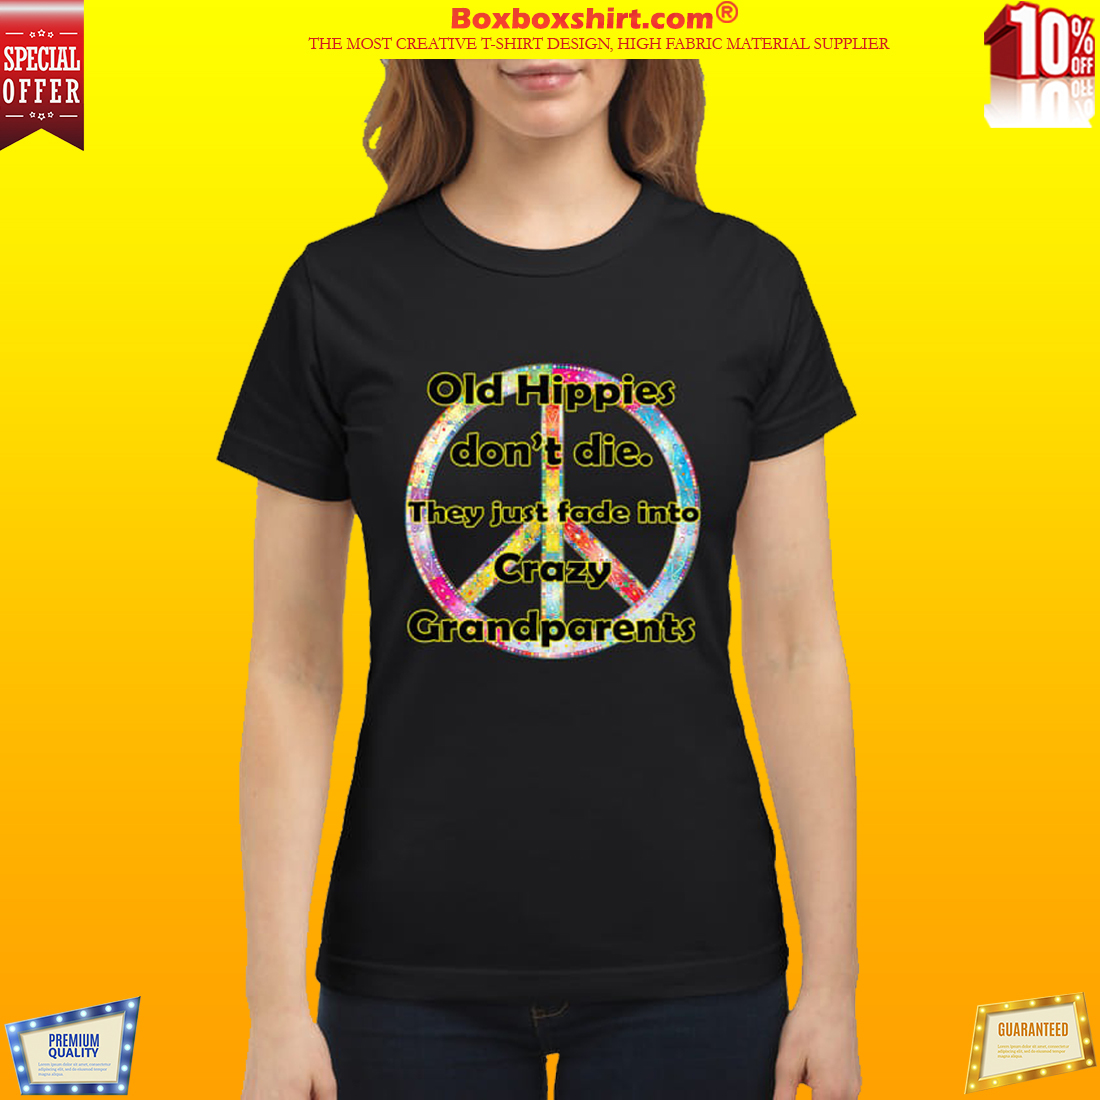 7291a09a8 10% OFF] Old Hippies don't die they just fade into Crazy grandparents